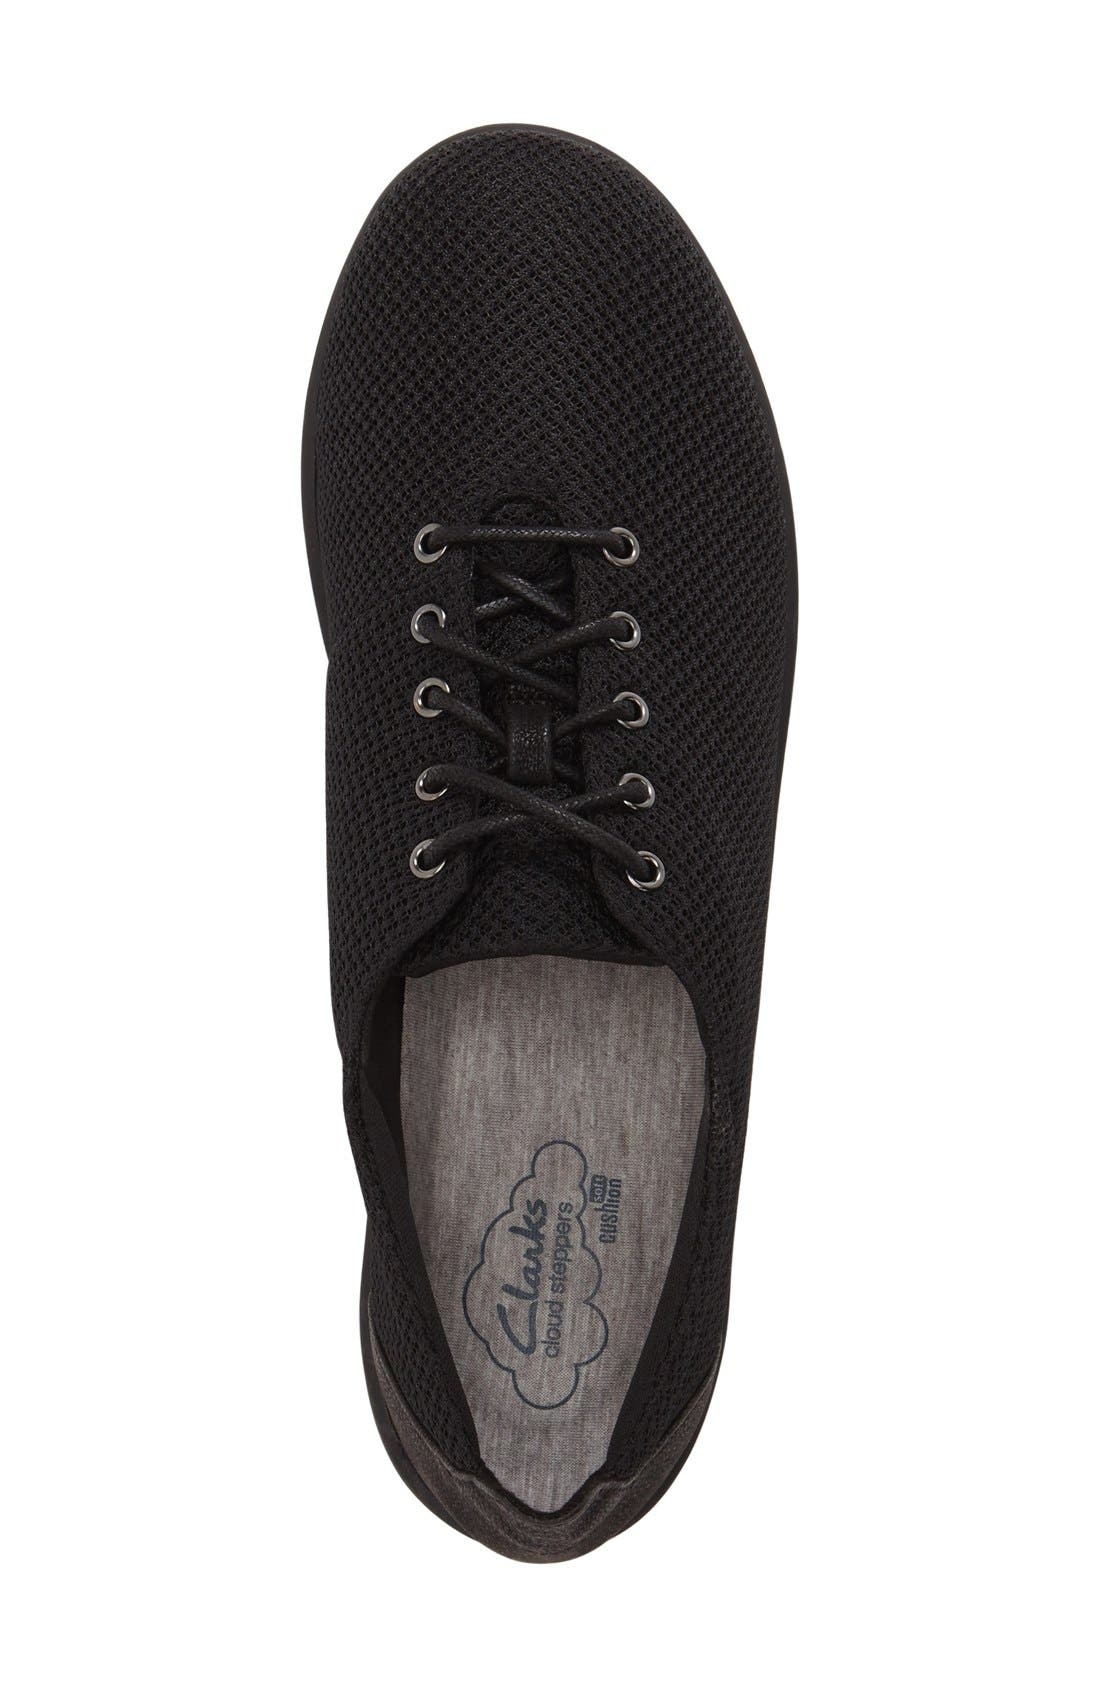 Clarks<sup>®</sup> 'Sillian - Tino' Sneaker,                             Alternate thumbnail 2, color,                             001